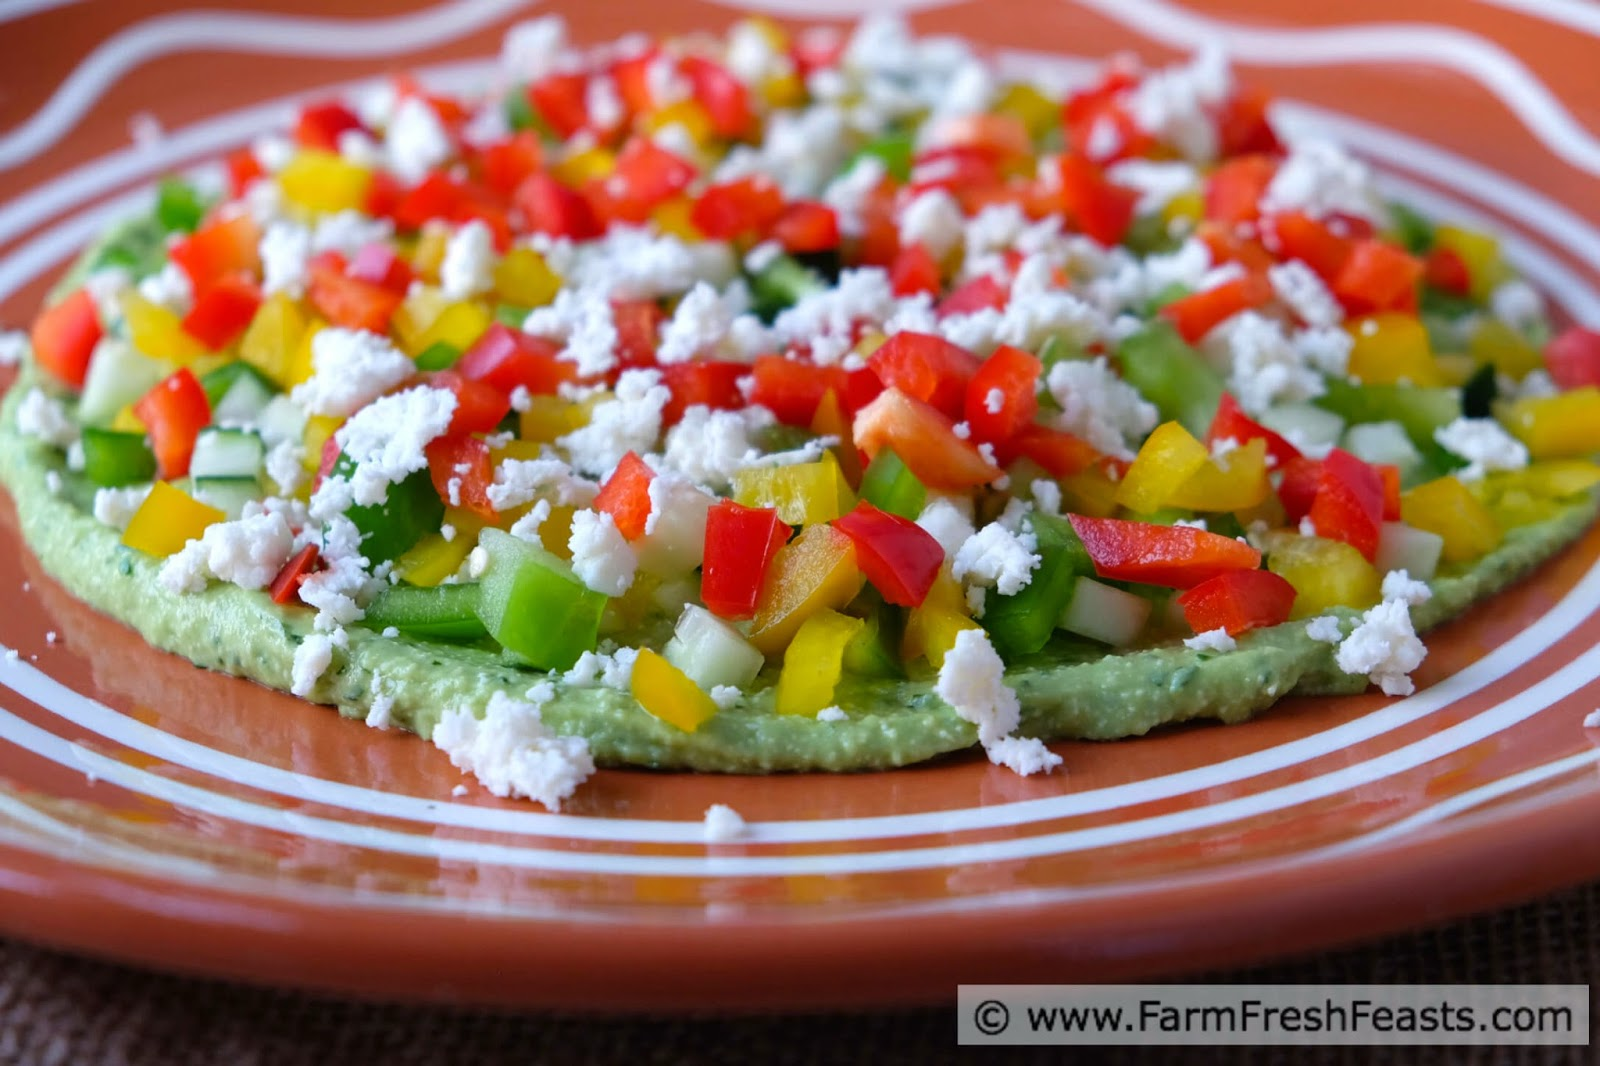 http://www.farmfreshfeasts.com/2015/04/avocado-queso-dip.html